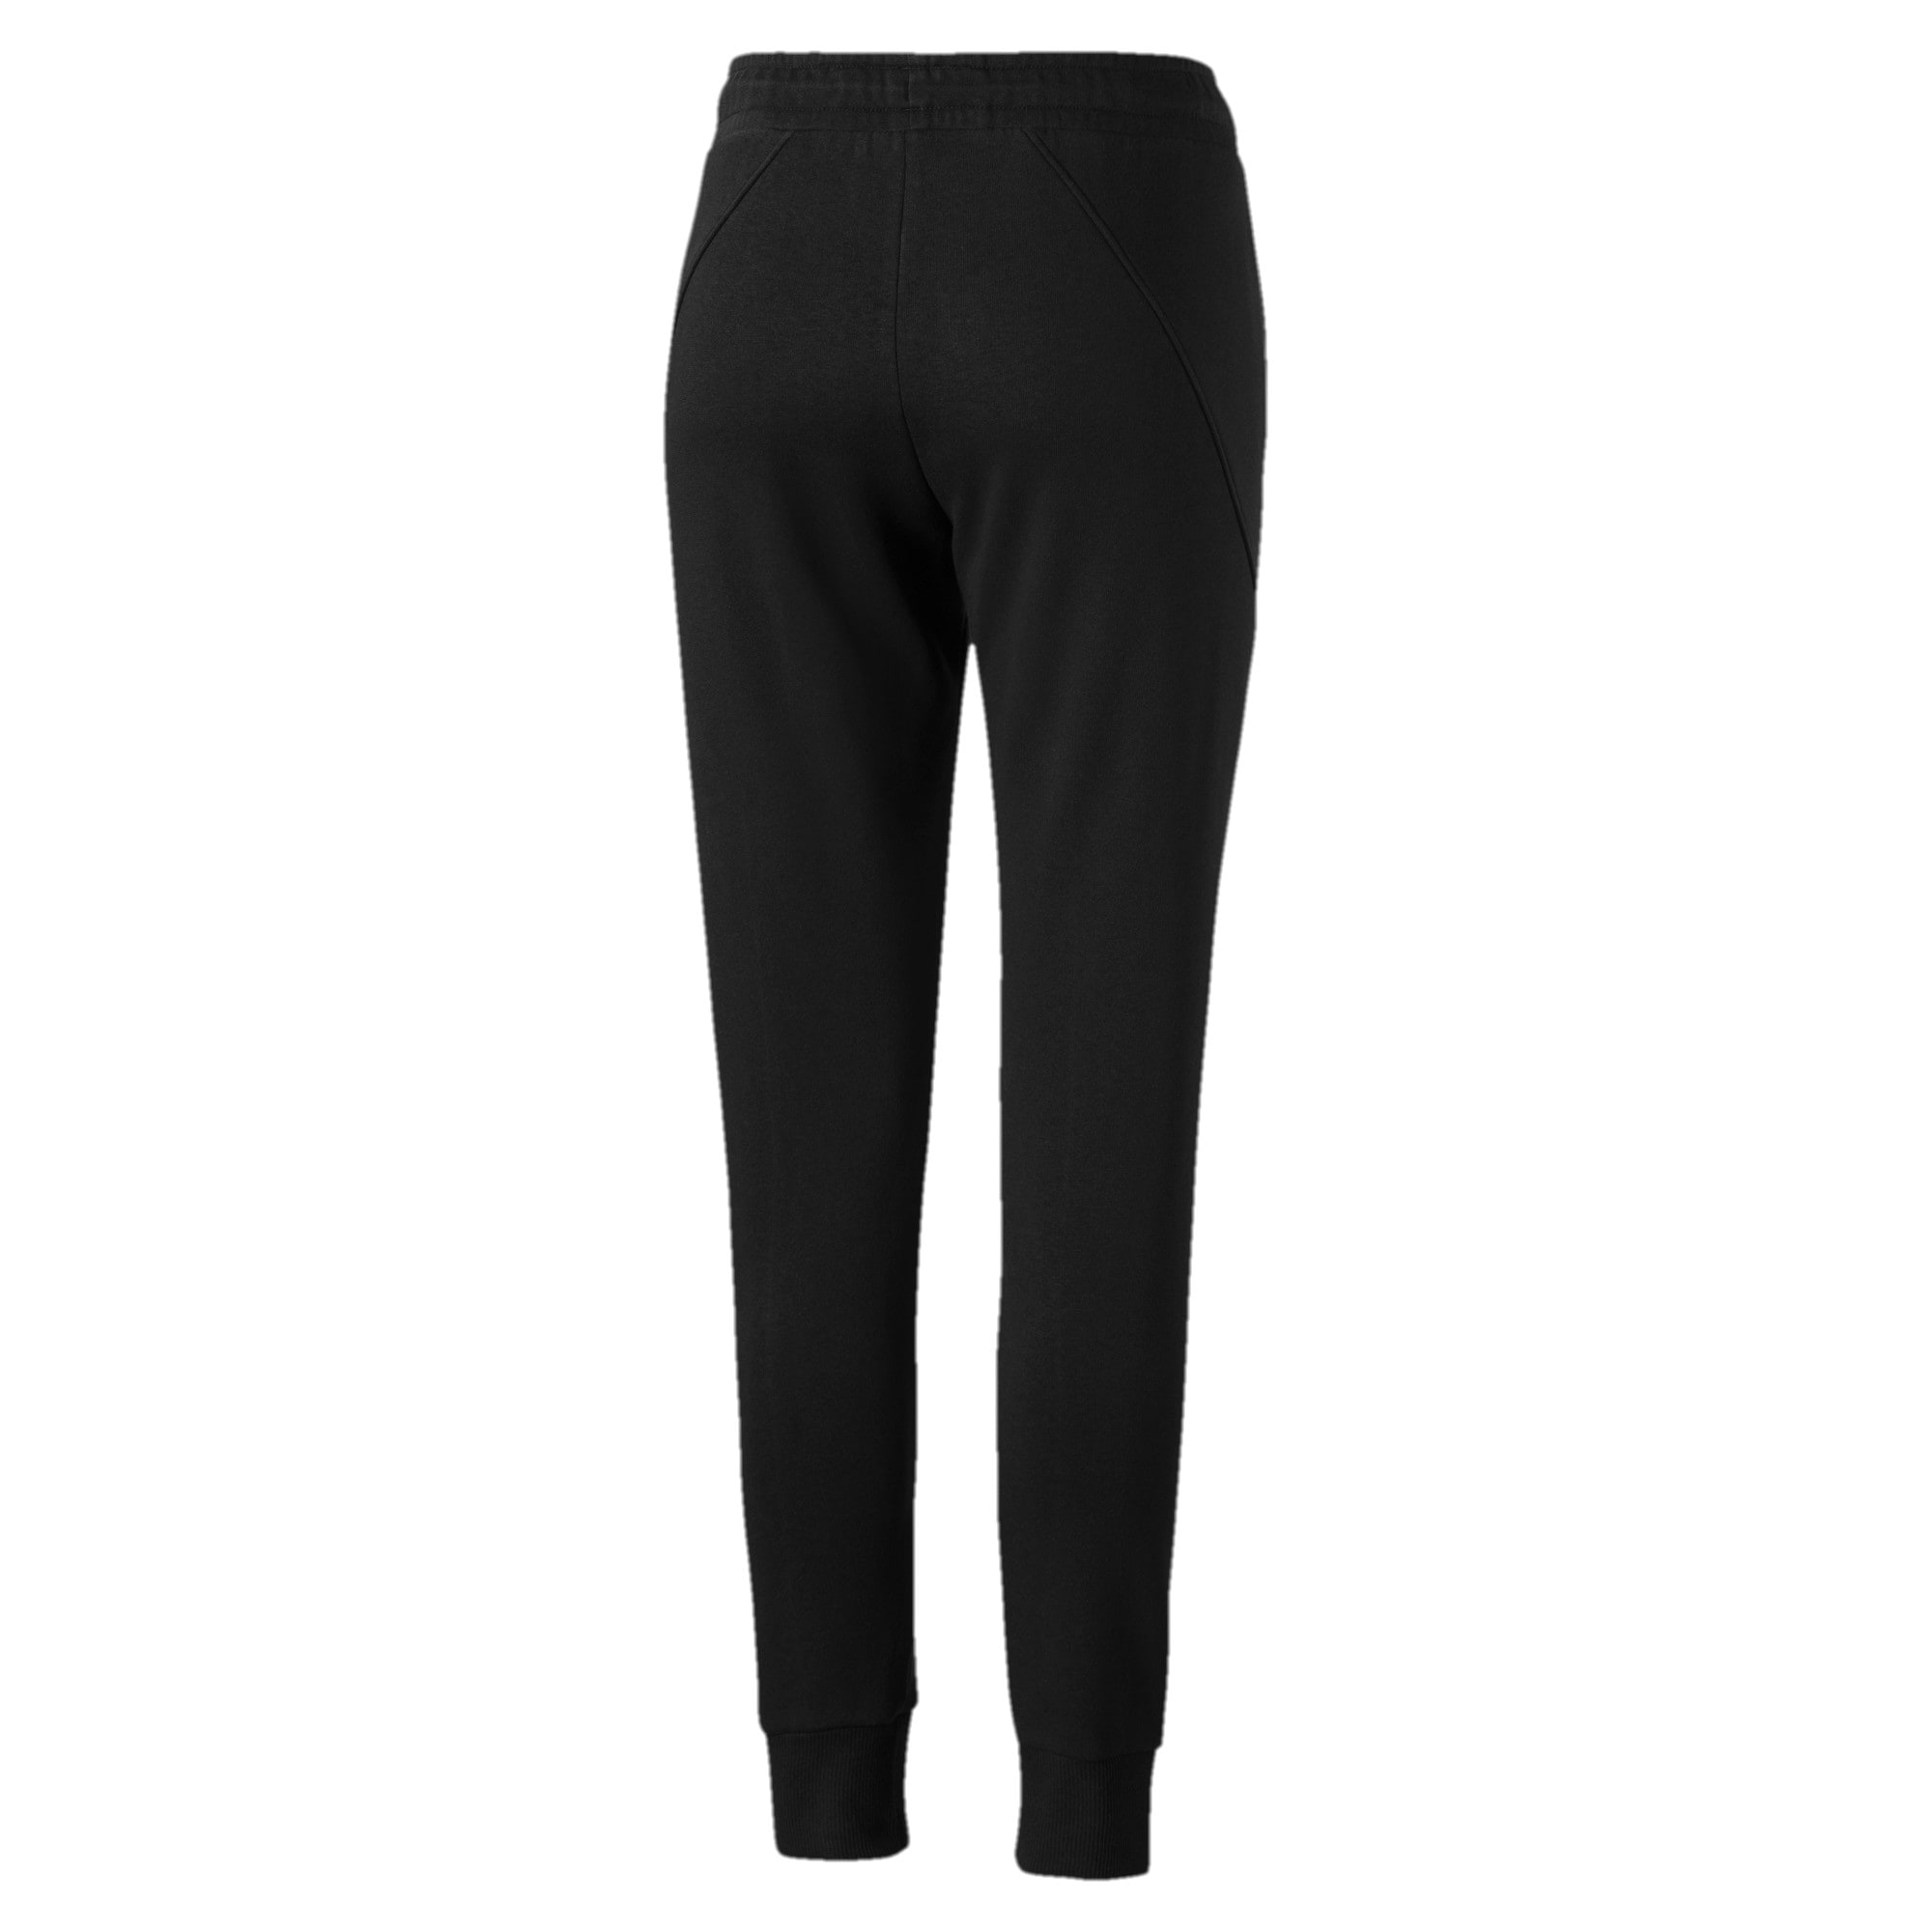 Thumbnail 5 of TZ Damen Trainingshose, Puma Black, medium